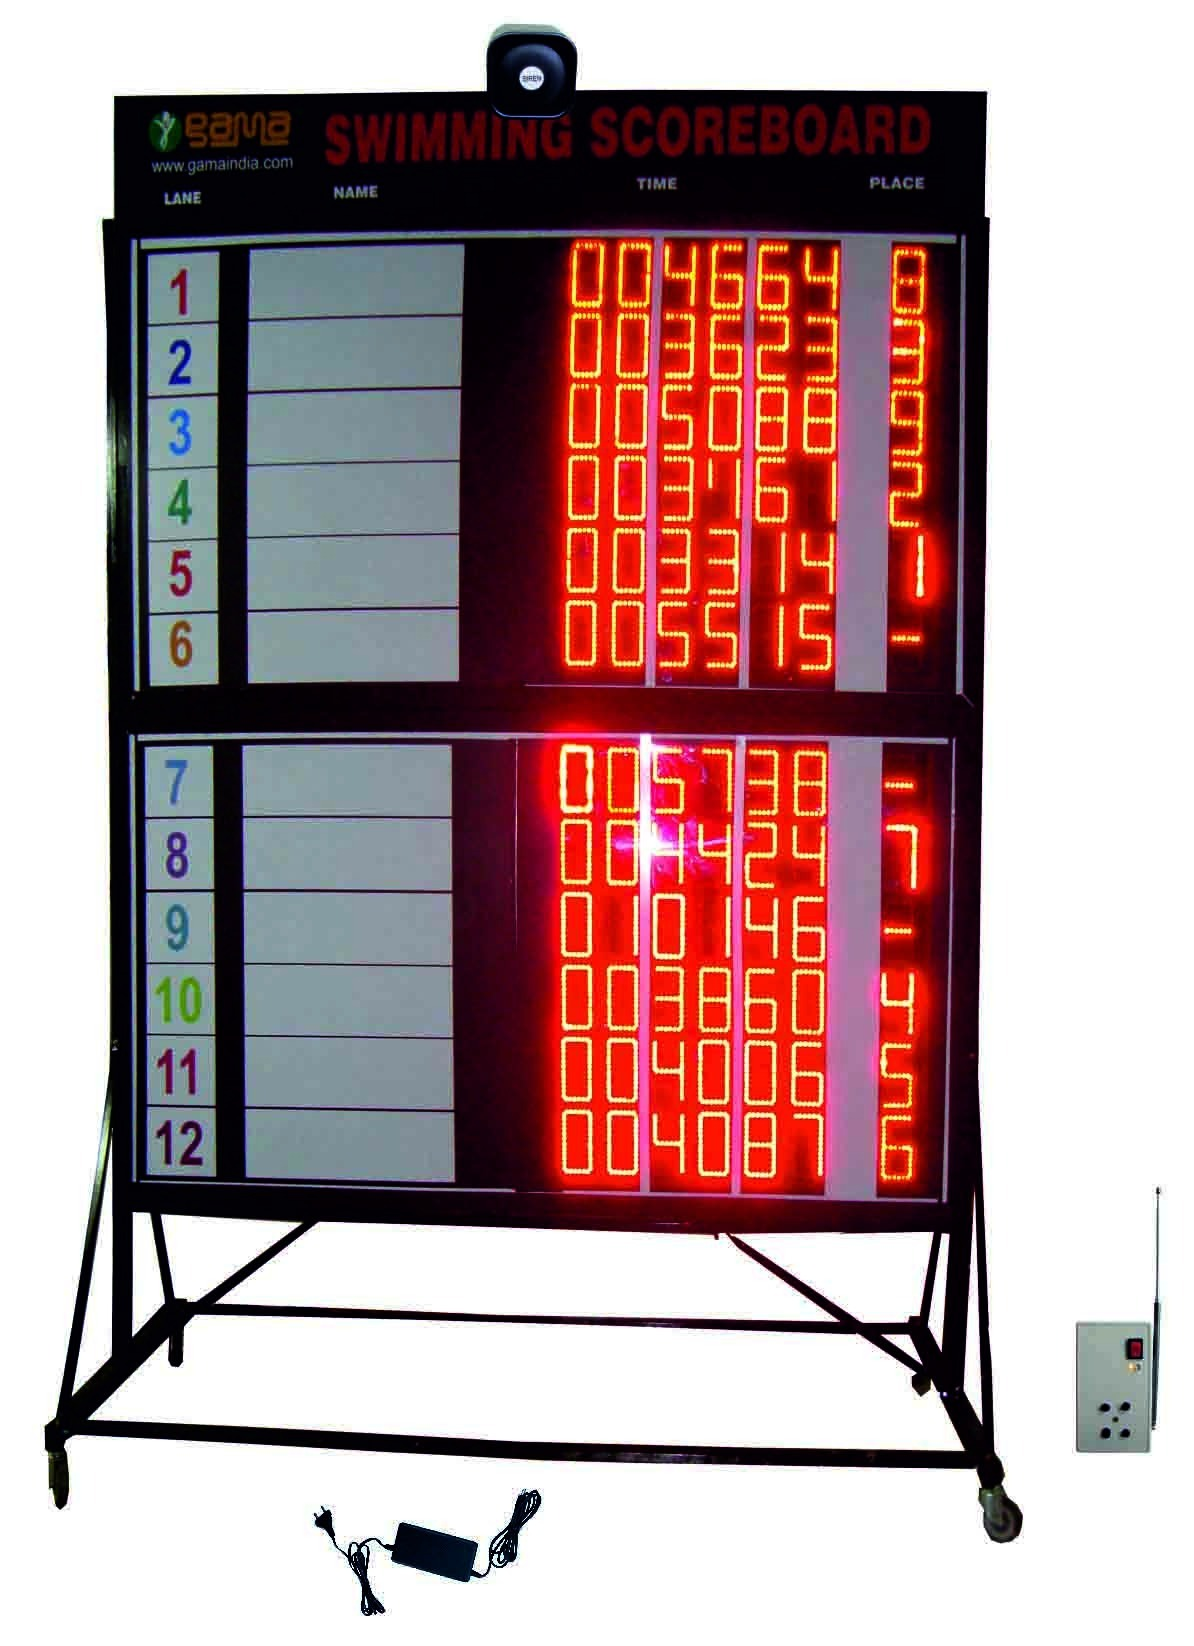 Swimming Scoreboard, Shape: Rectangle